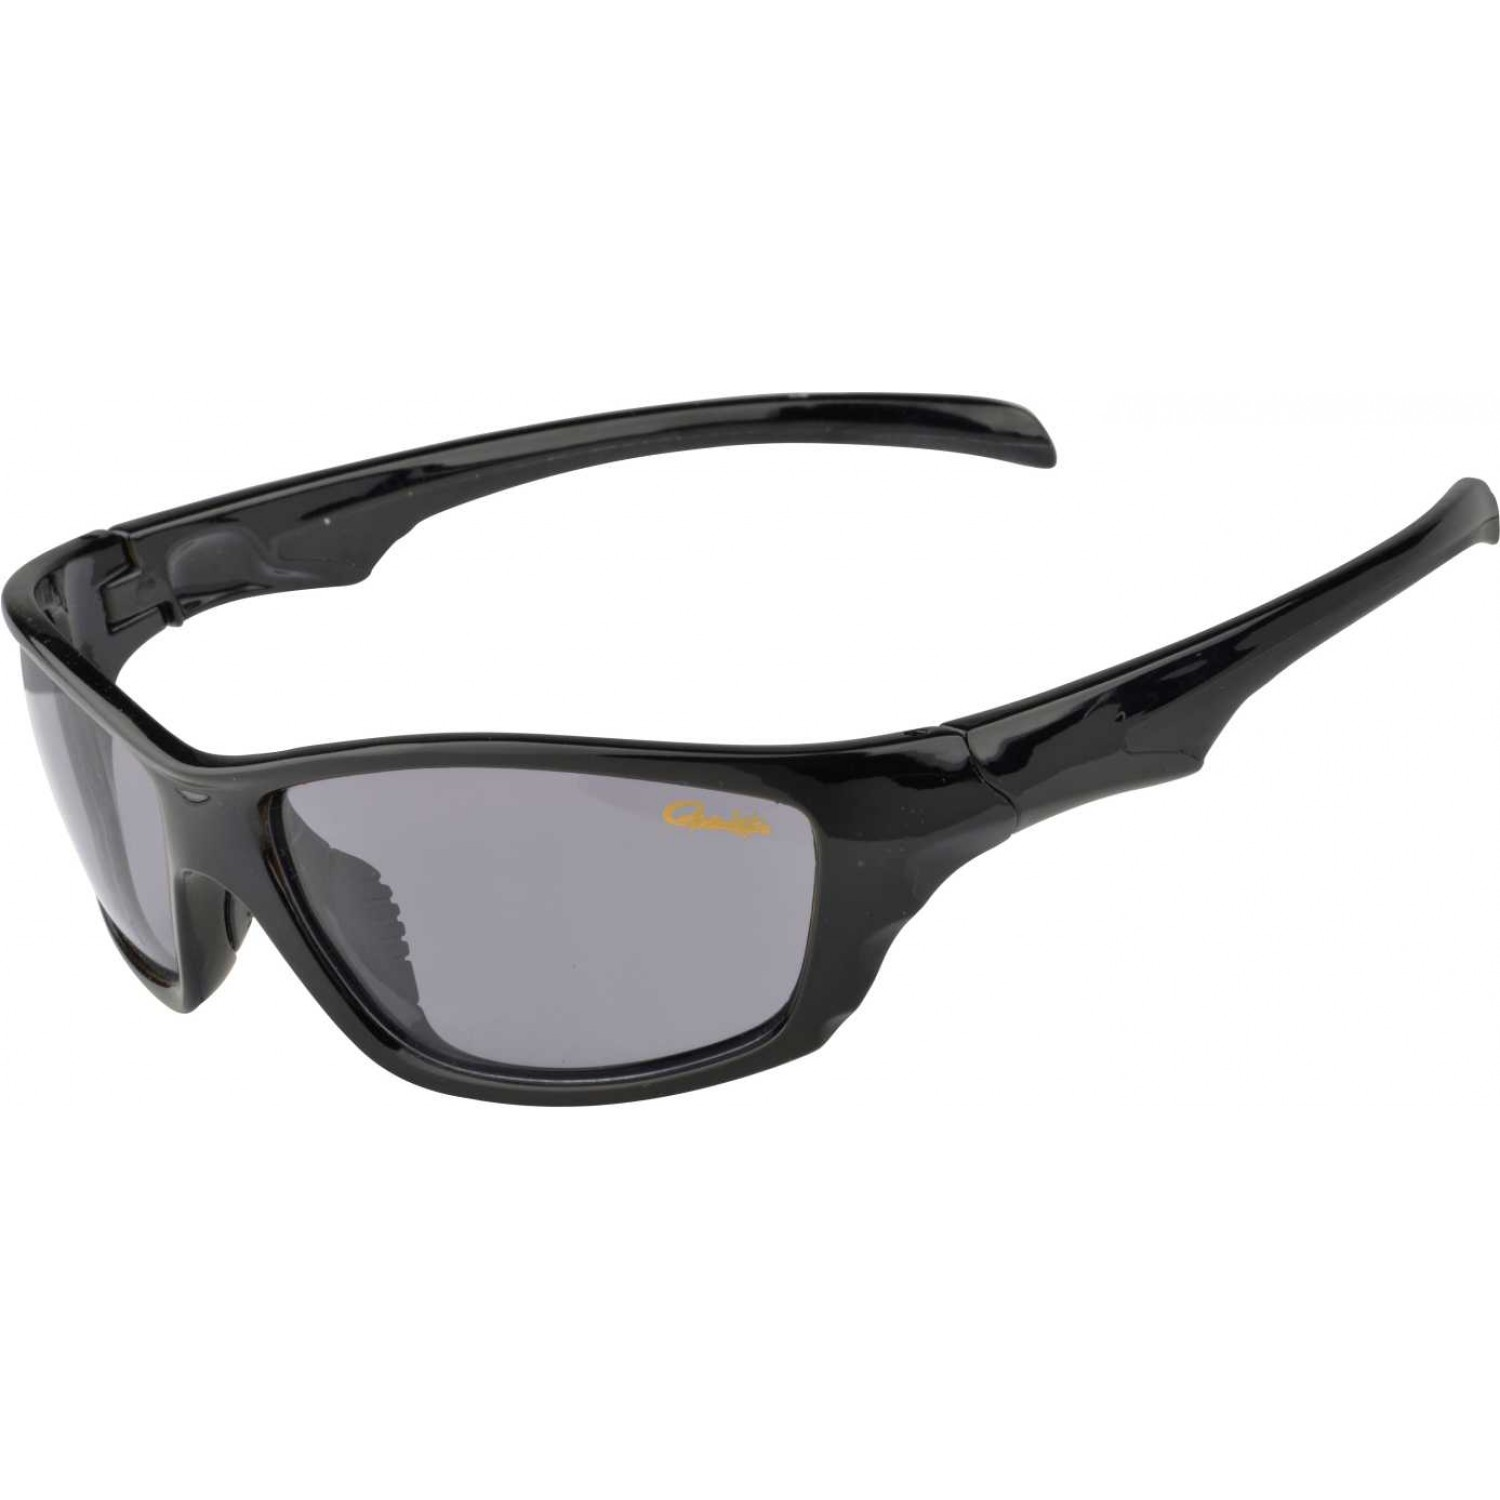 Gamakatsu G-Glasses Waver Light Gray Mirror